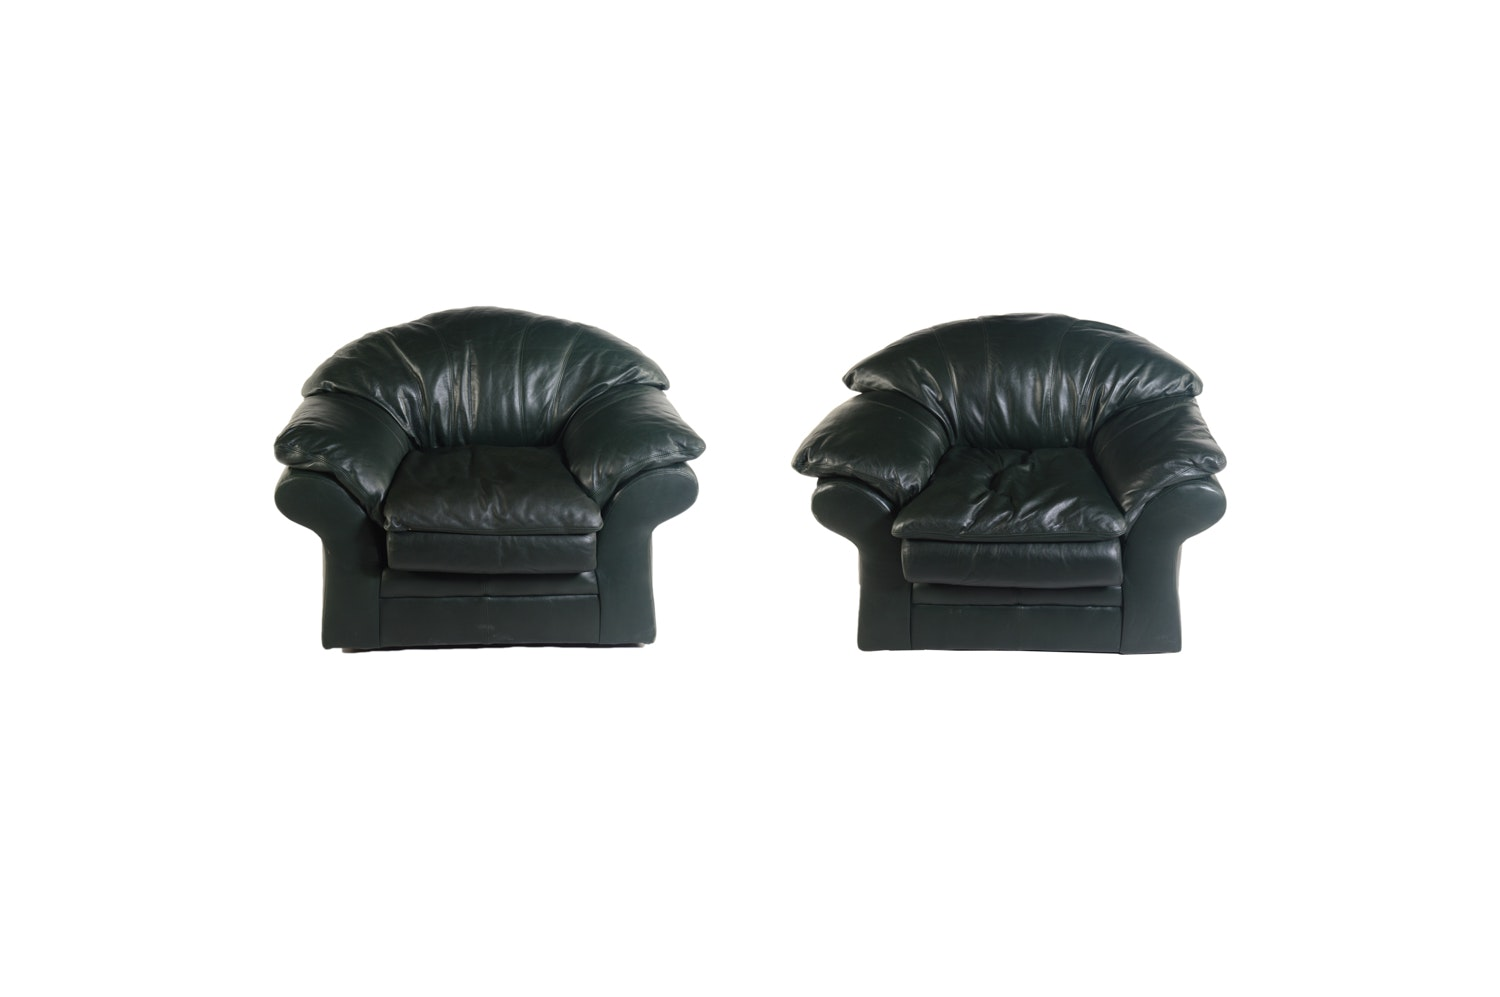 Black Leather Armchairs by Viewpoint Leather Works